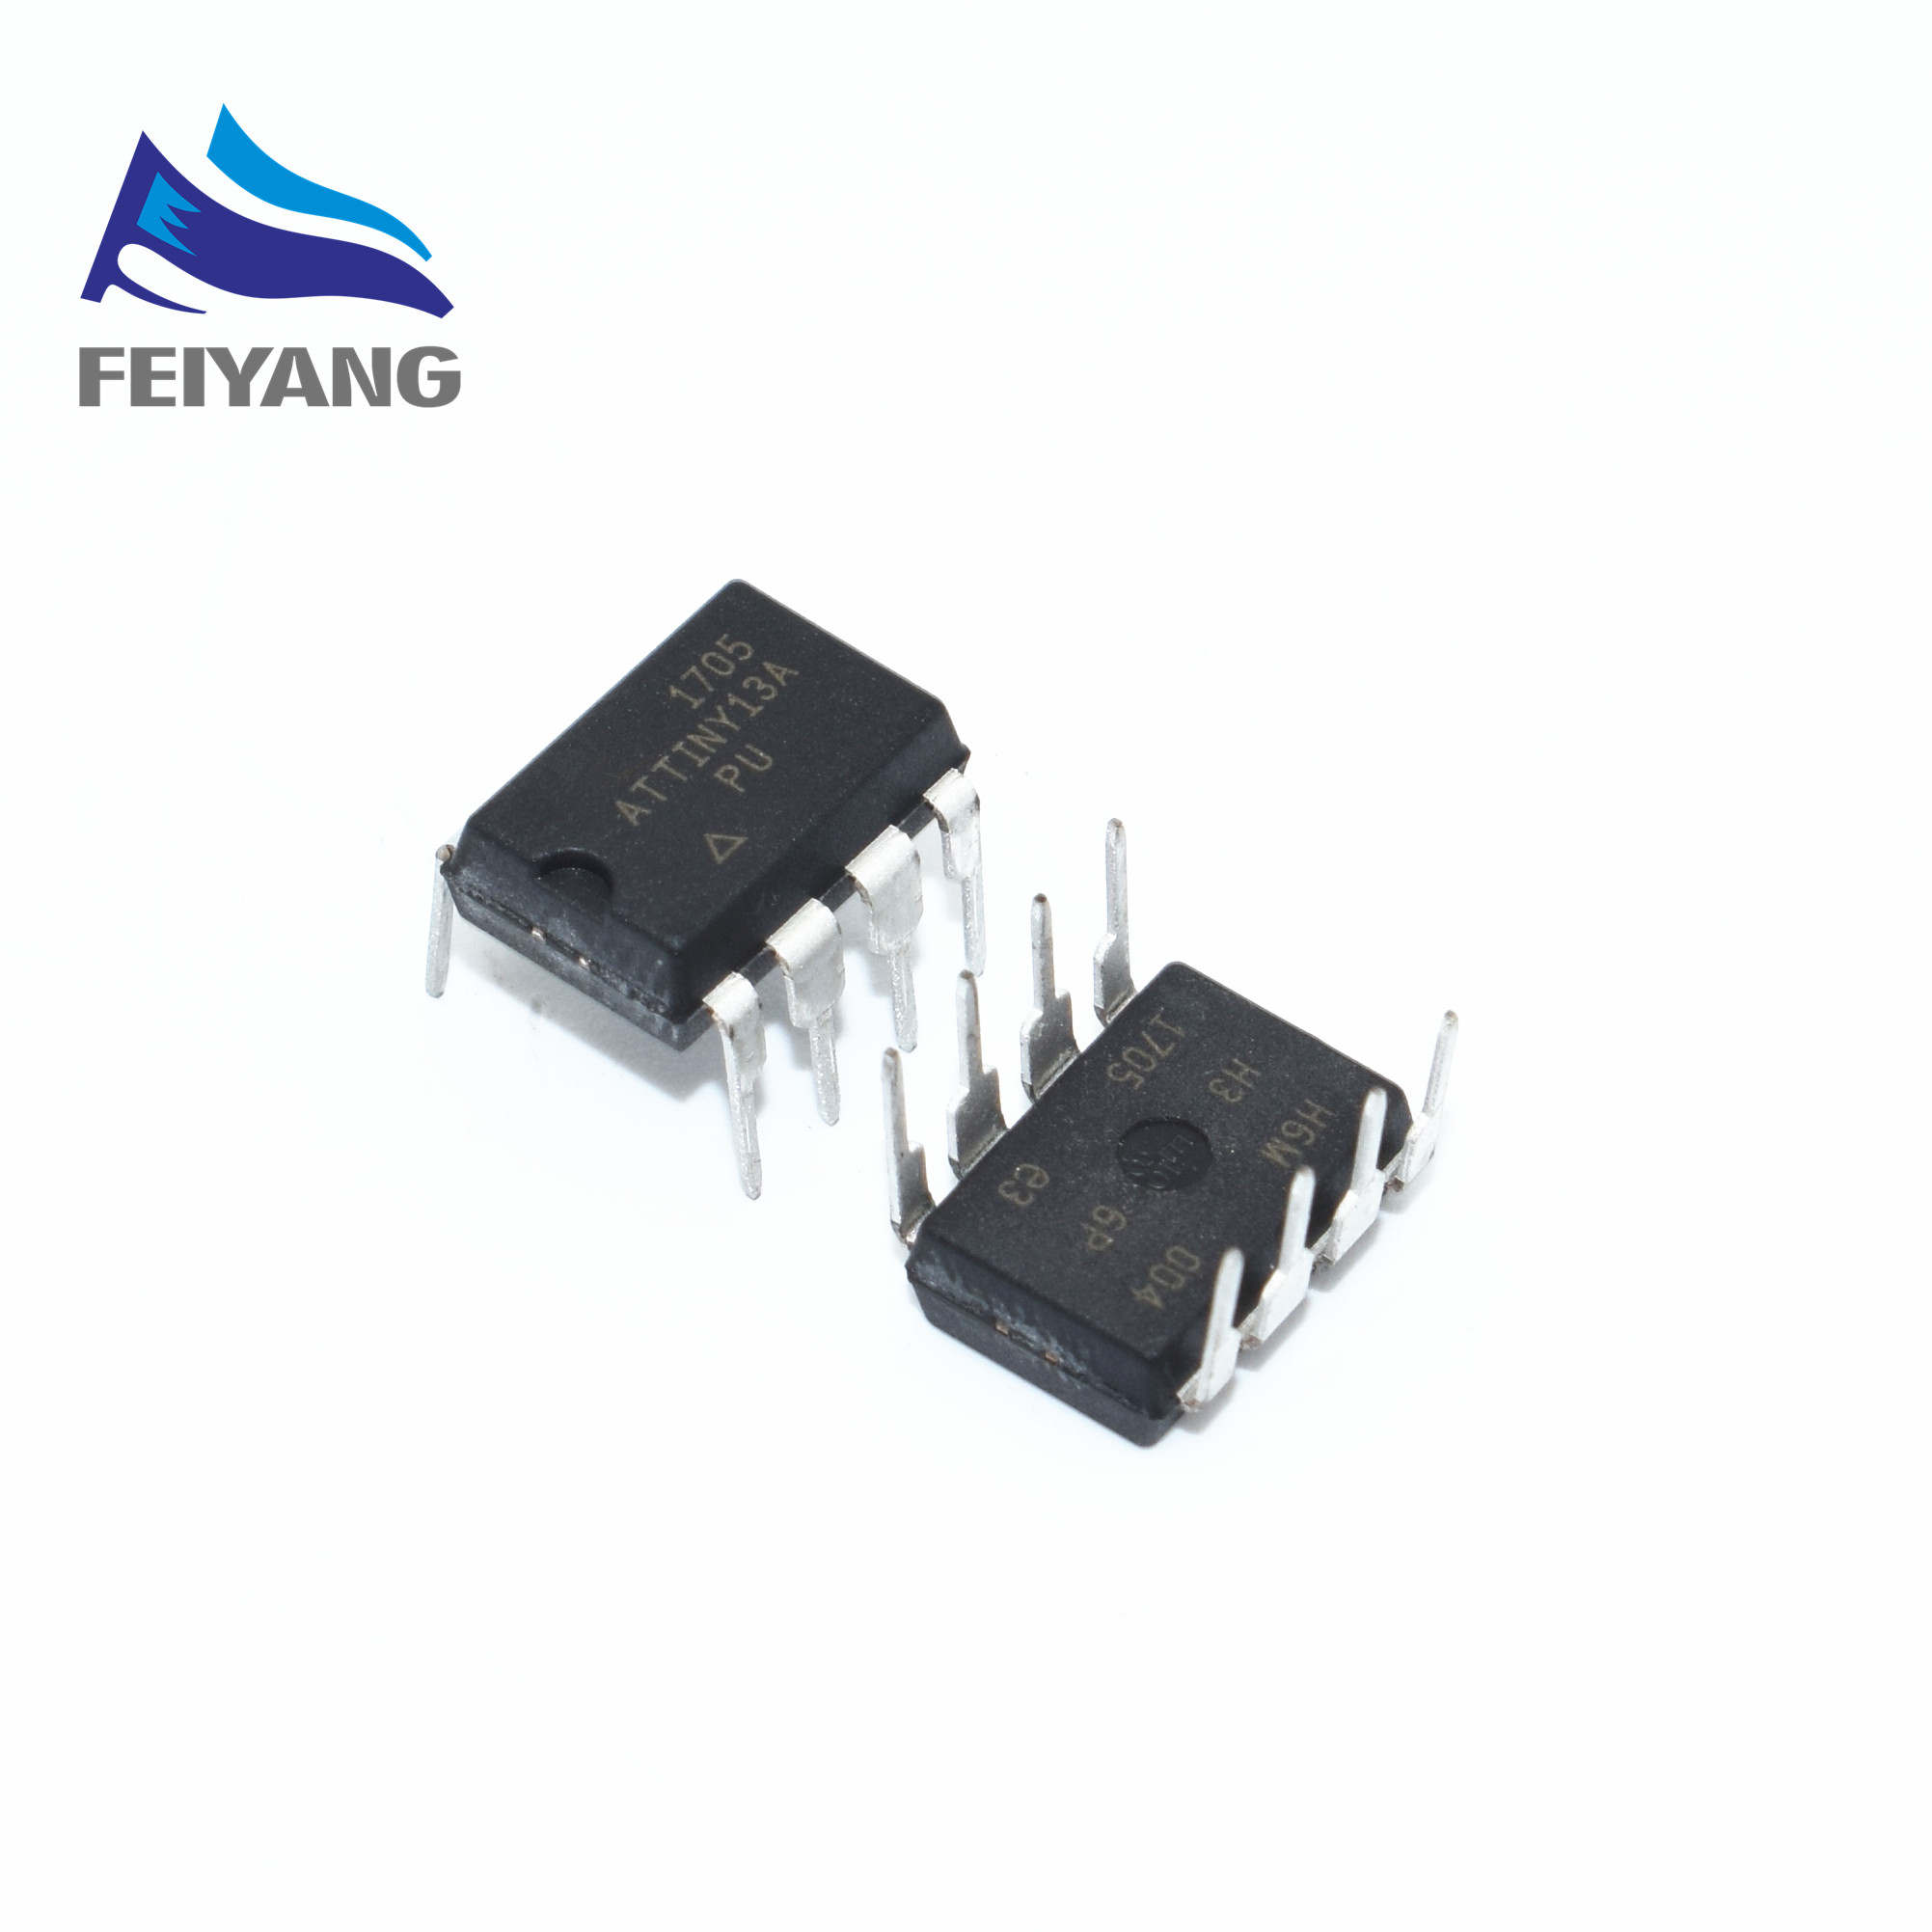 5 Unids Lote Attiny13a Pu Attiny13a Attiny13 13a Pu Ic Ww9 Perfect Media Me